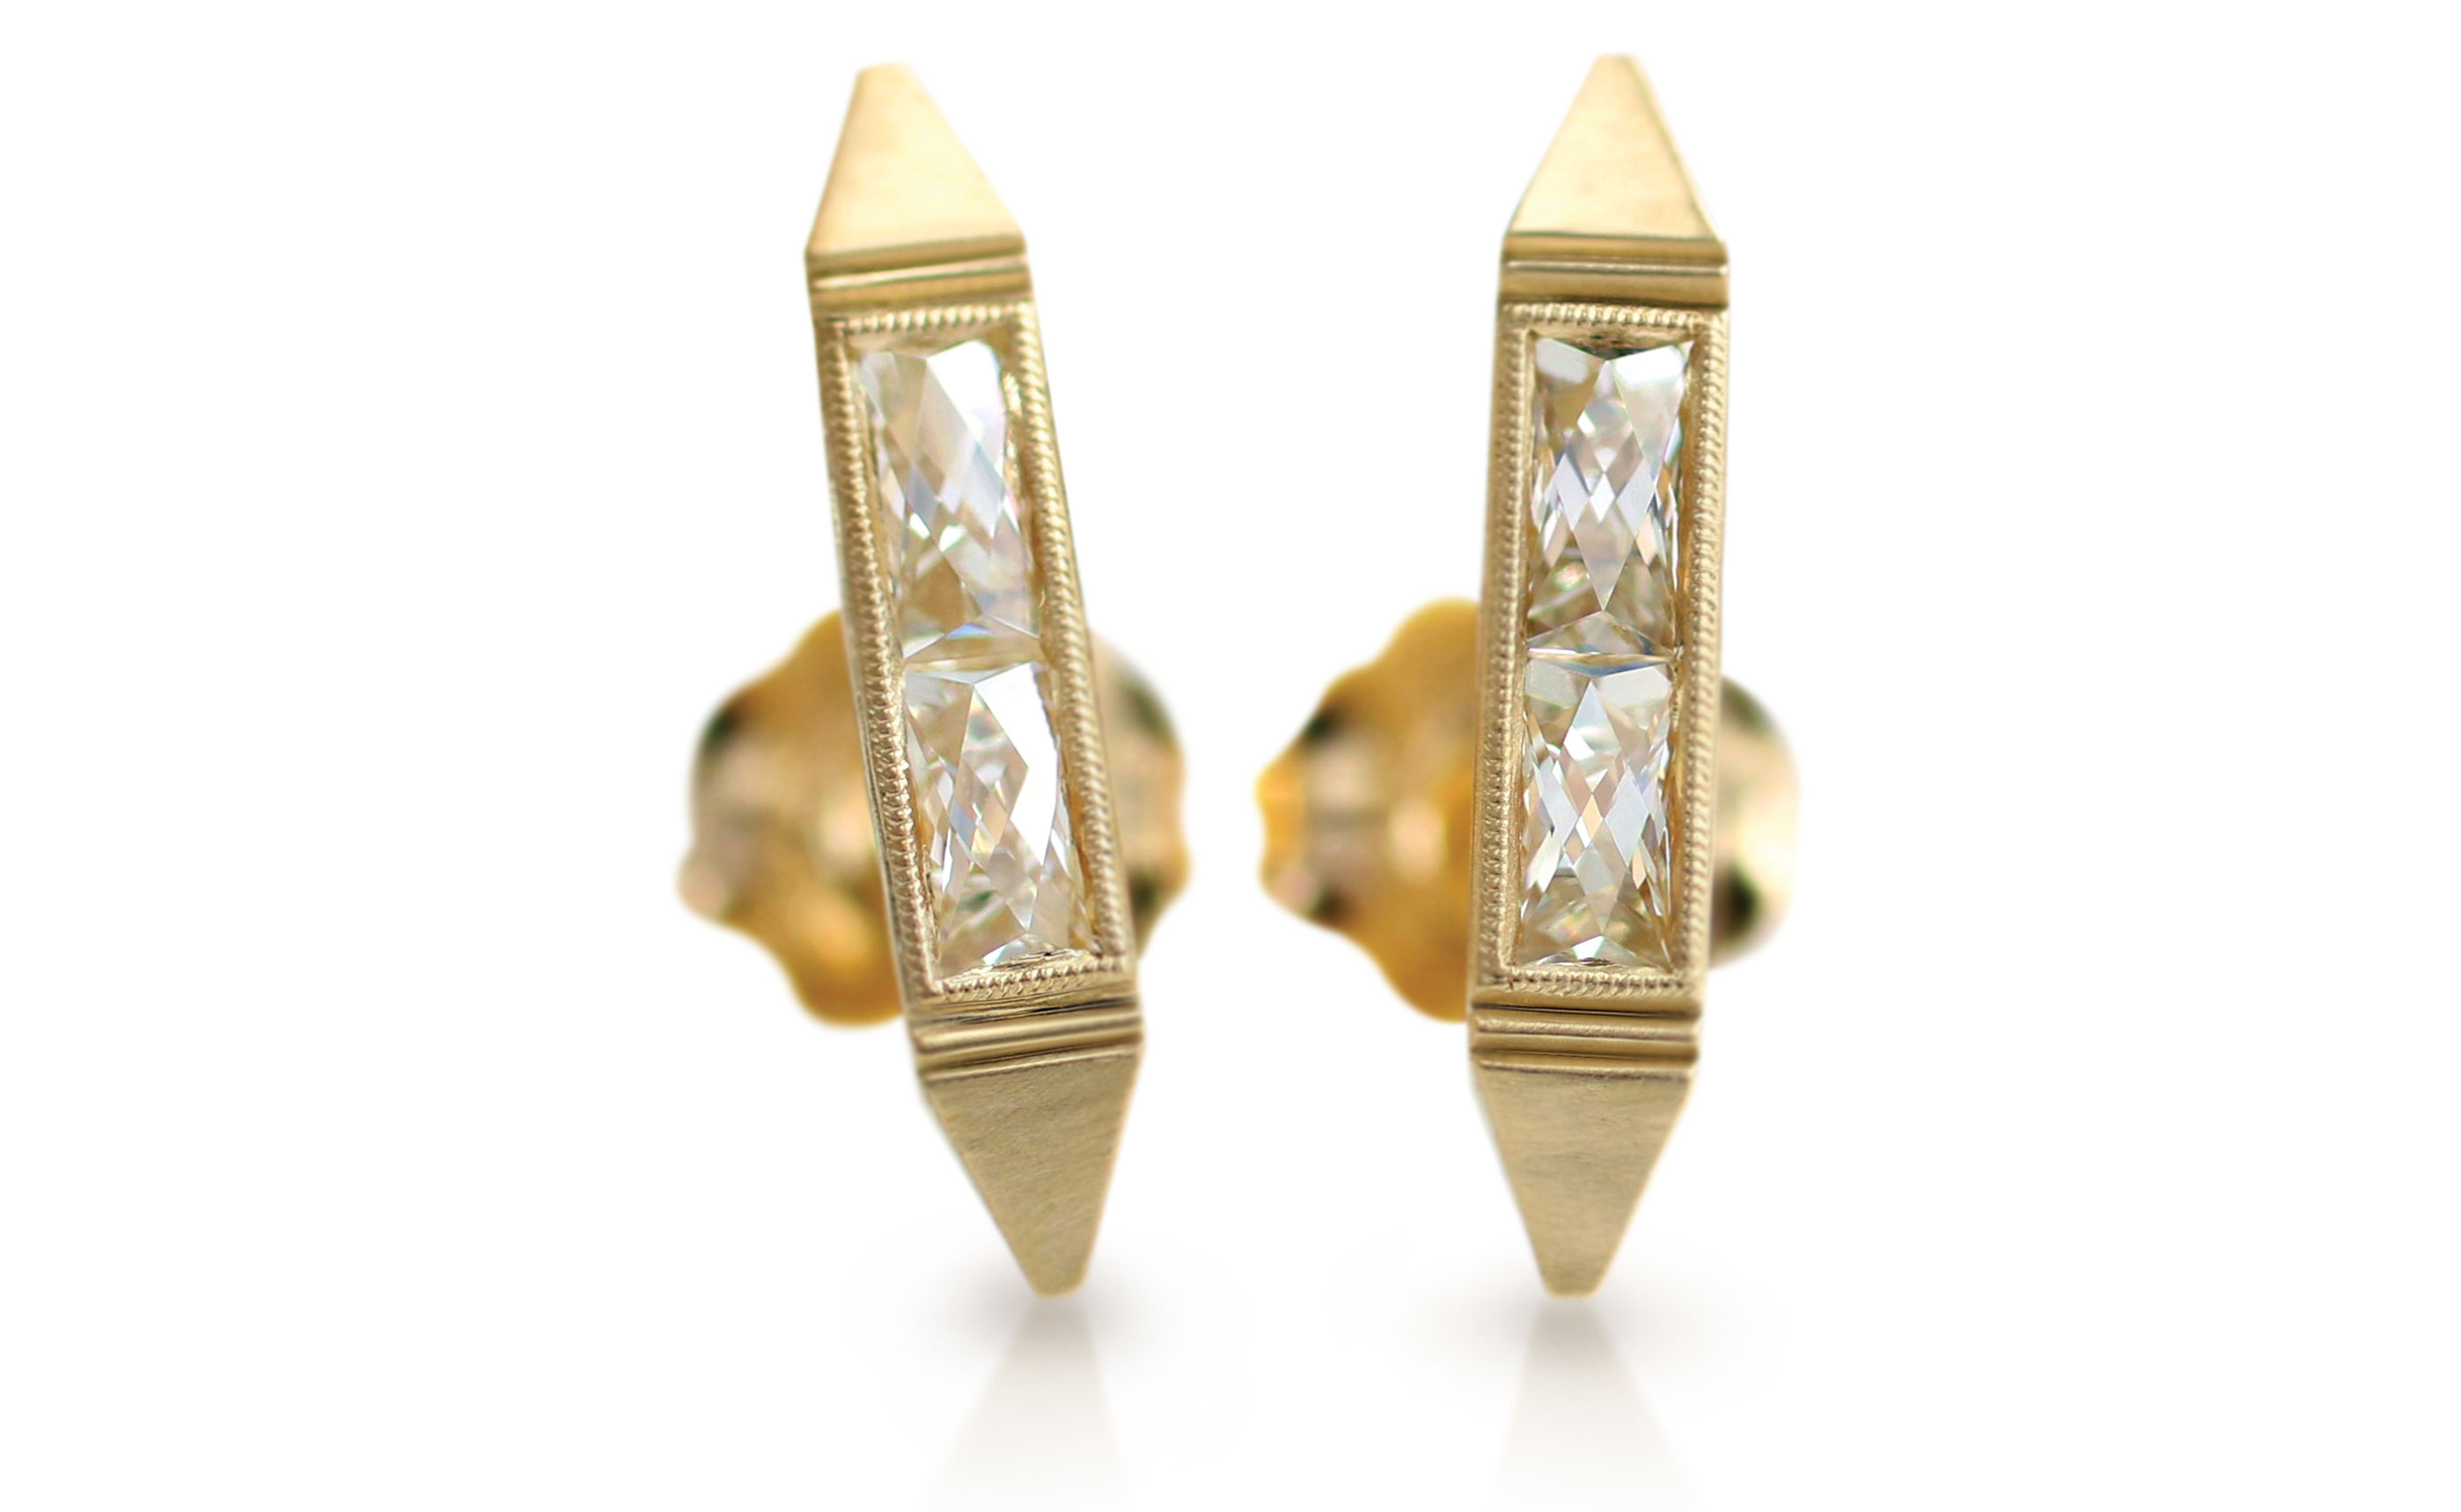 Erika Winters hand-engraved 18K yellow gold earrings with French-cut diamonds